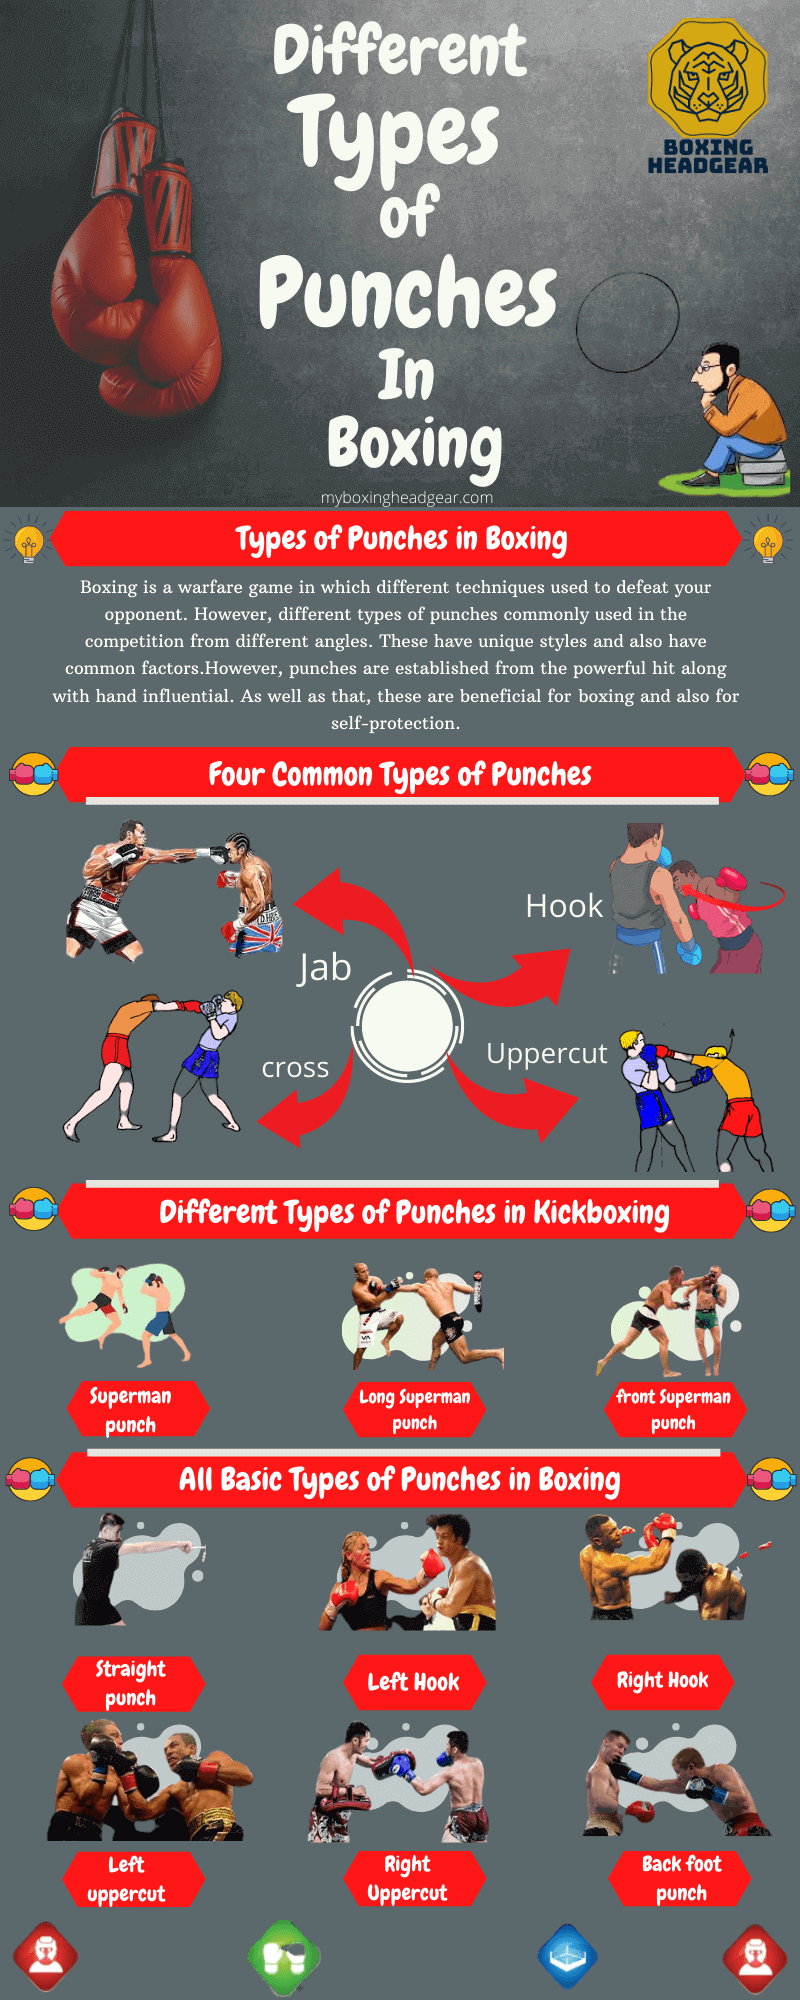 Different types of punches in boxing